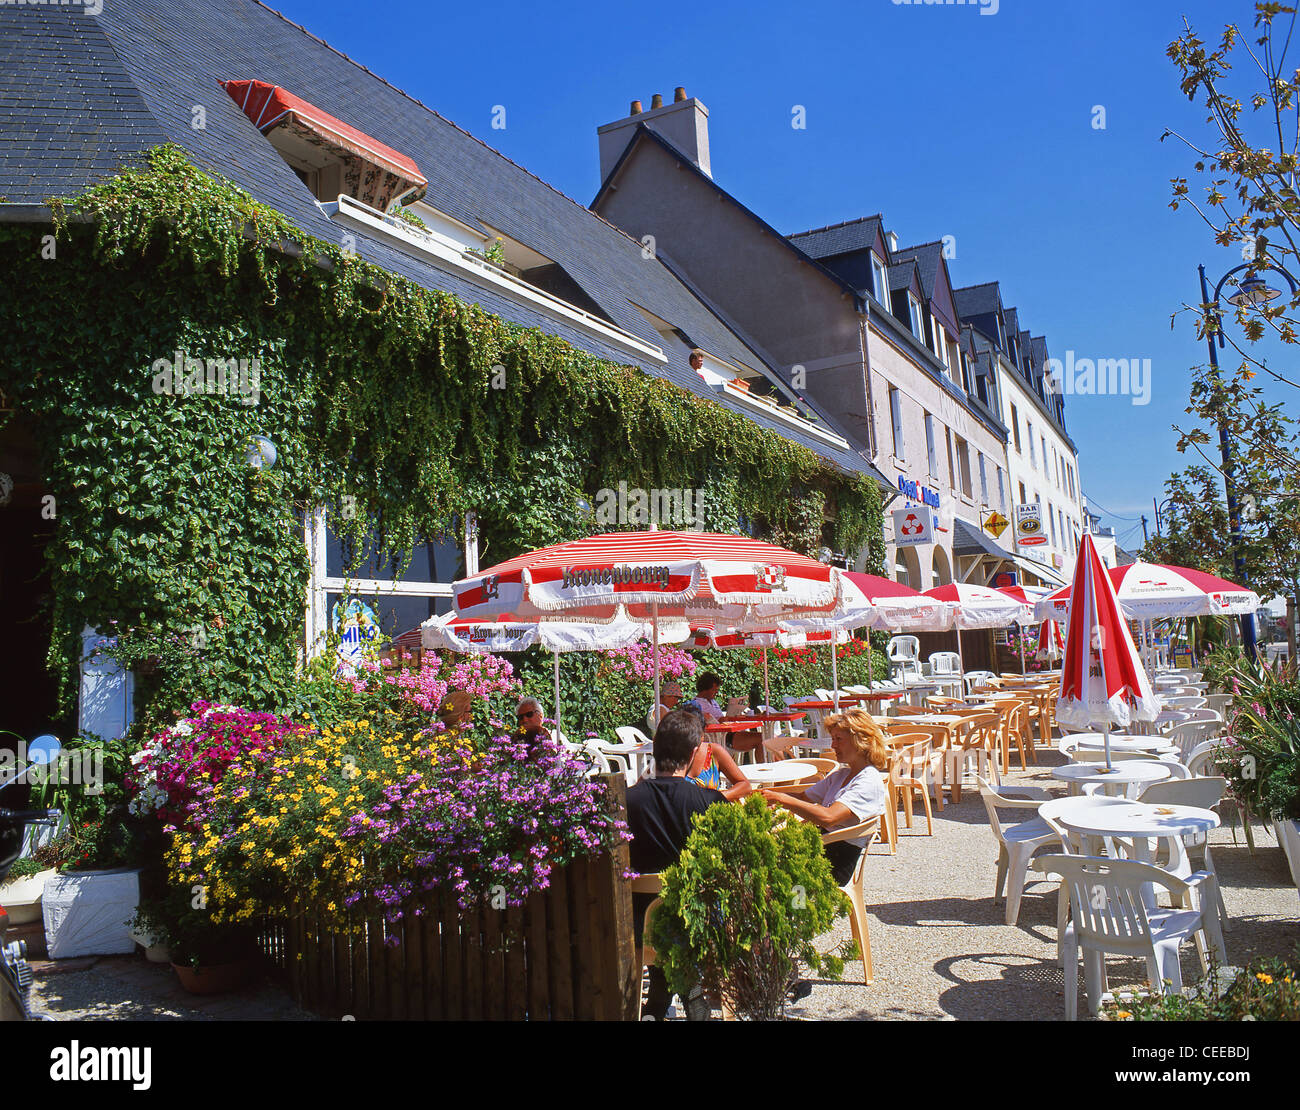 Outdoor restaurant, Locquirec, Finistère, Brittany, France - Stock Image